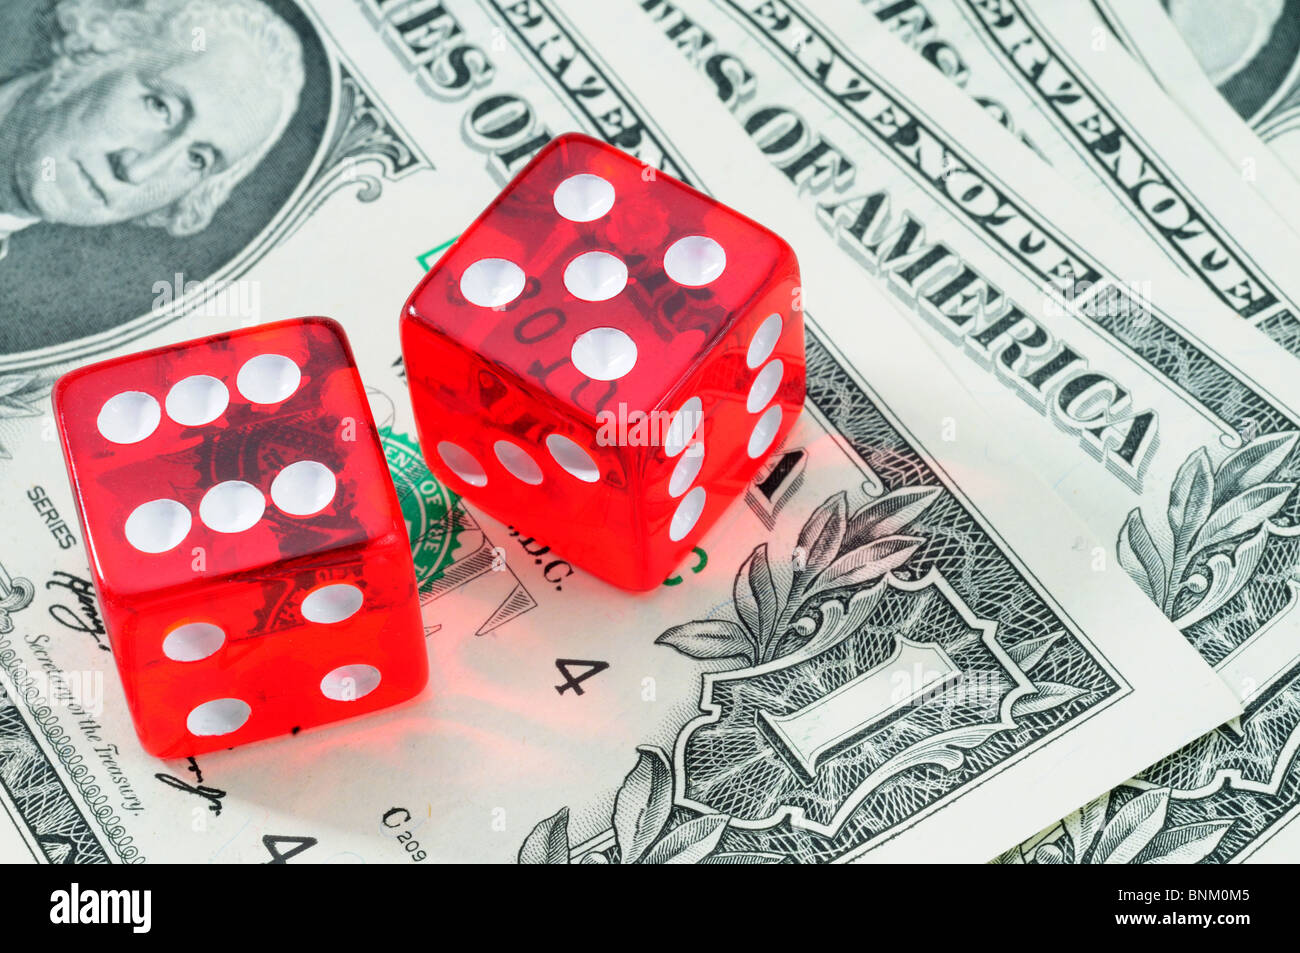 Winning Number Red Craps Dice On American Money - Stock Image